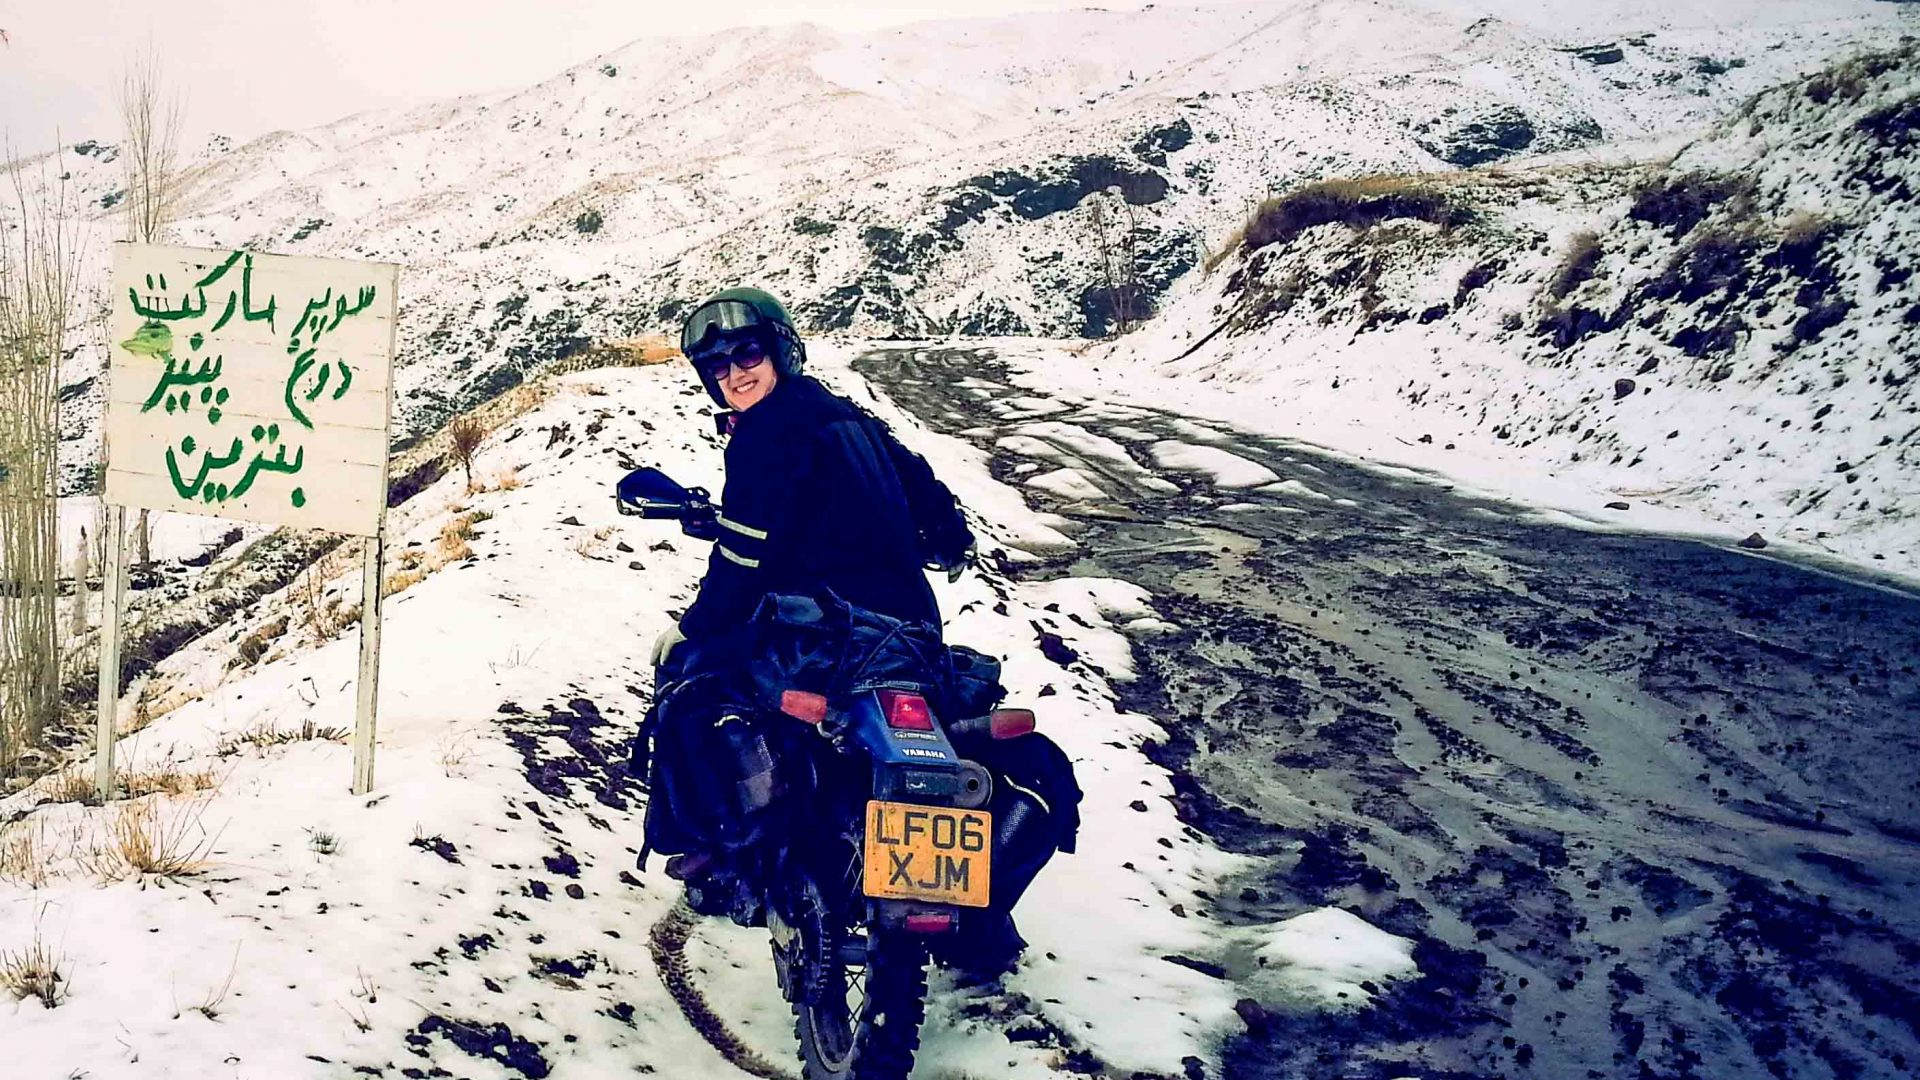 Lois rides her bike through the snow in Iran.